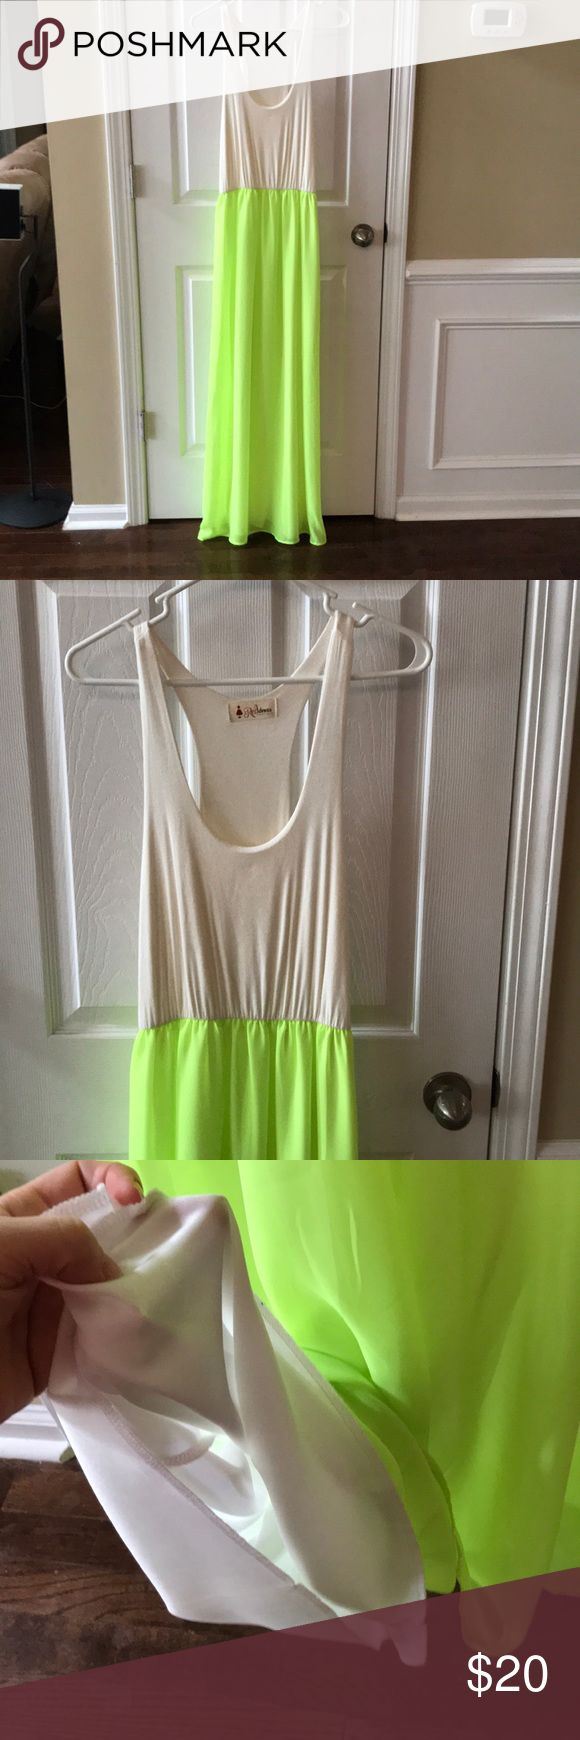 """Women's Maxi Dress Brand new! Never worn. Red Dress Boutique. Highlighter yellow with slip underneath. Cream tank. 59"""" Long from top to bottom. Spring staple! Red Dress Boutique Dresses Maxi"""